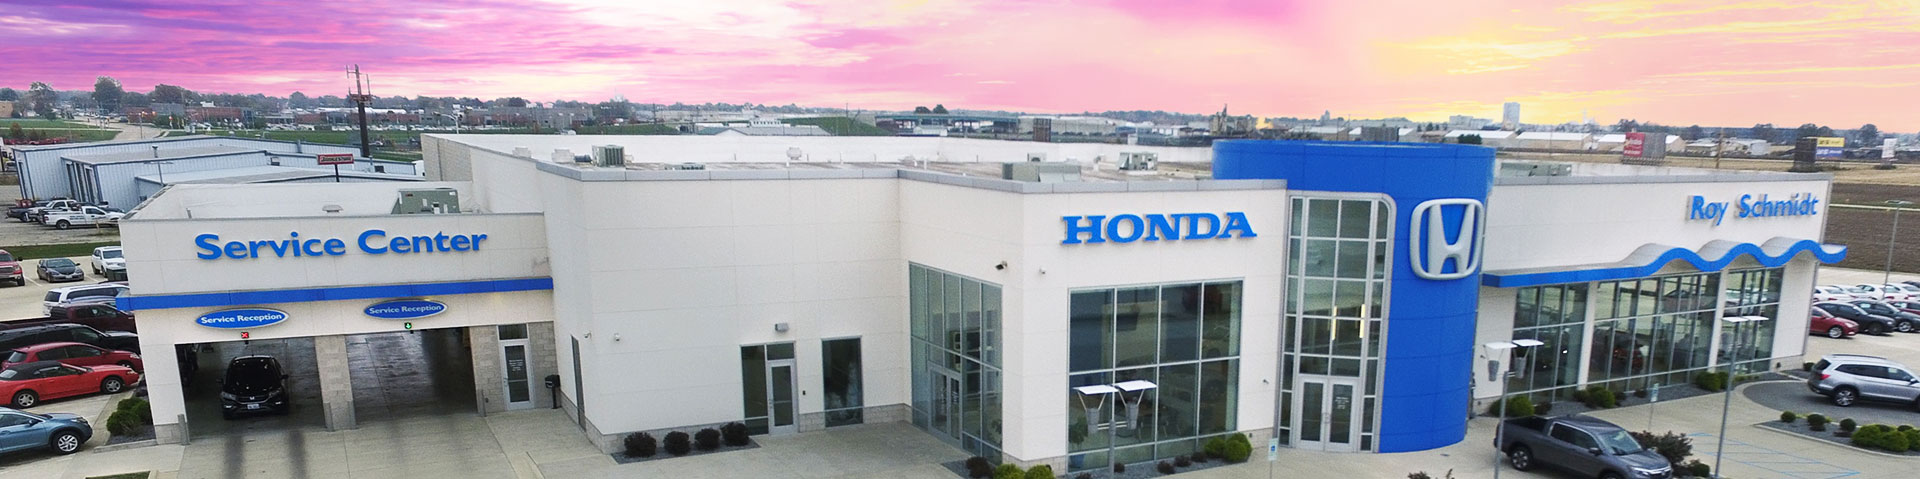 Roy Schmidt Honda Dealership